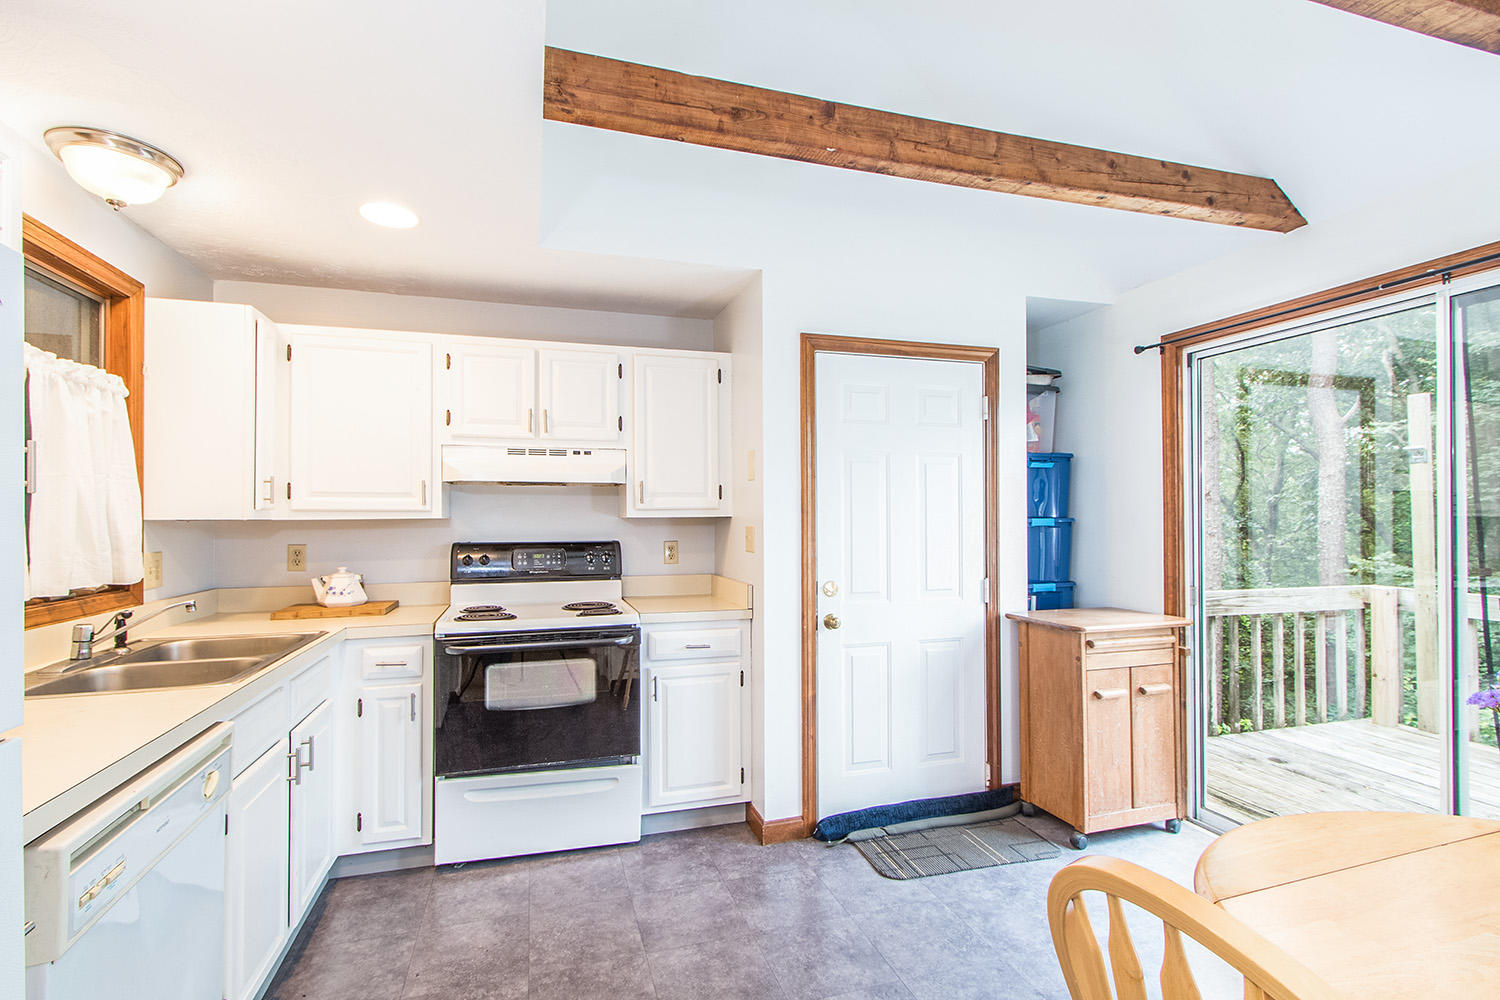 75 Finlay Road, Orleans MA, 02653 details